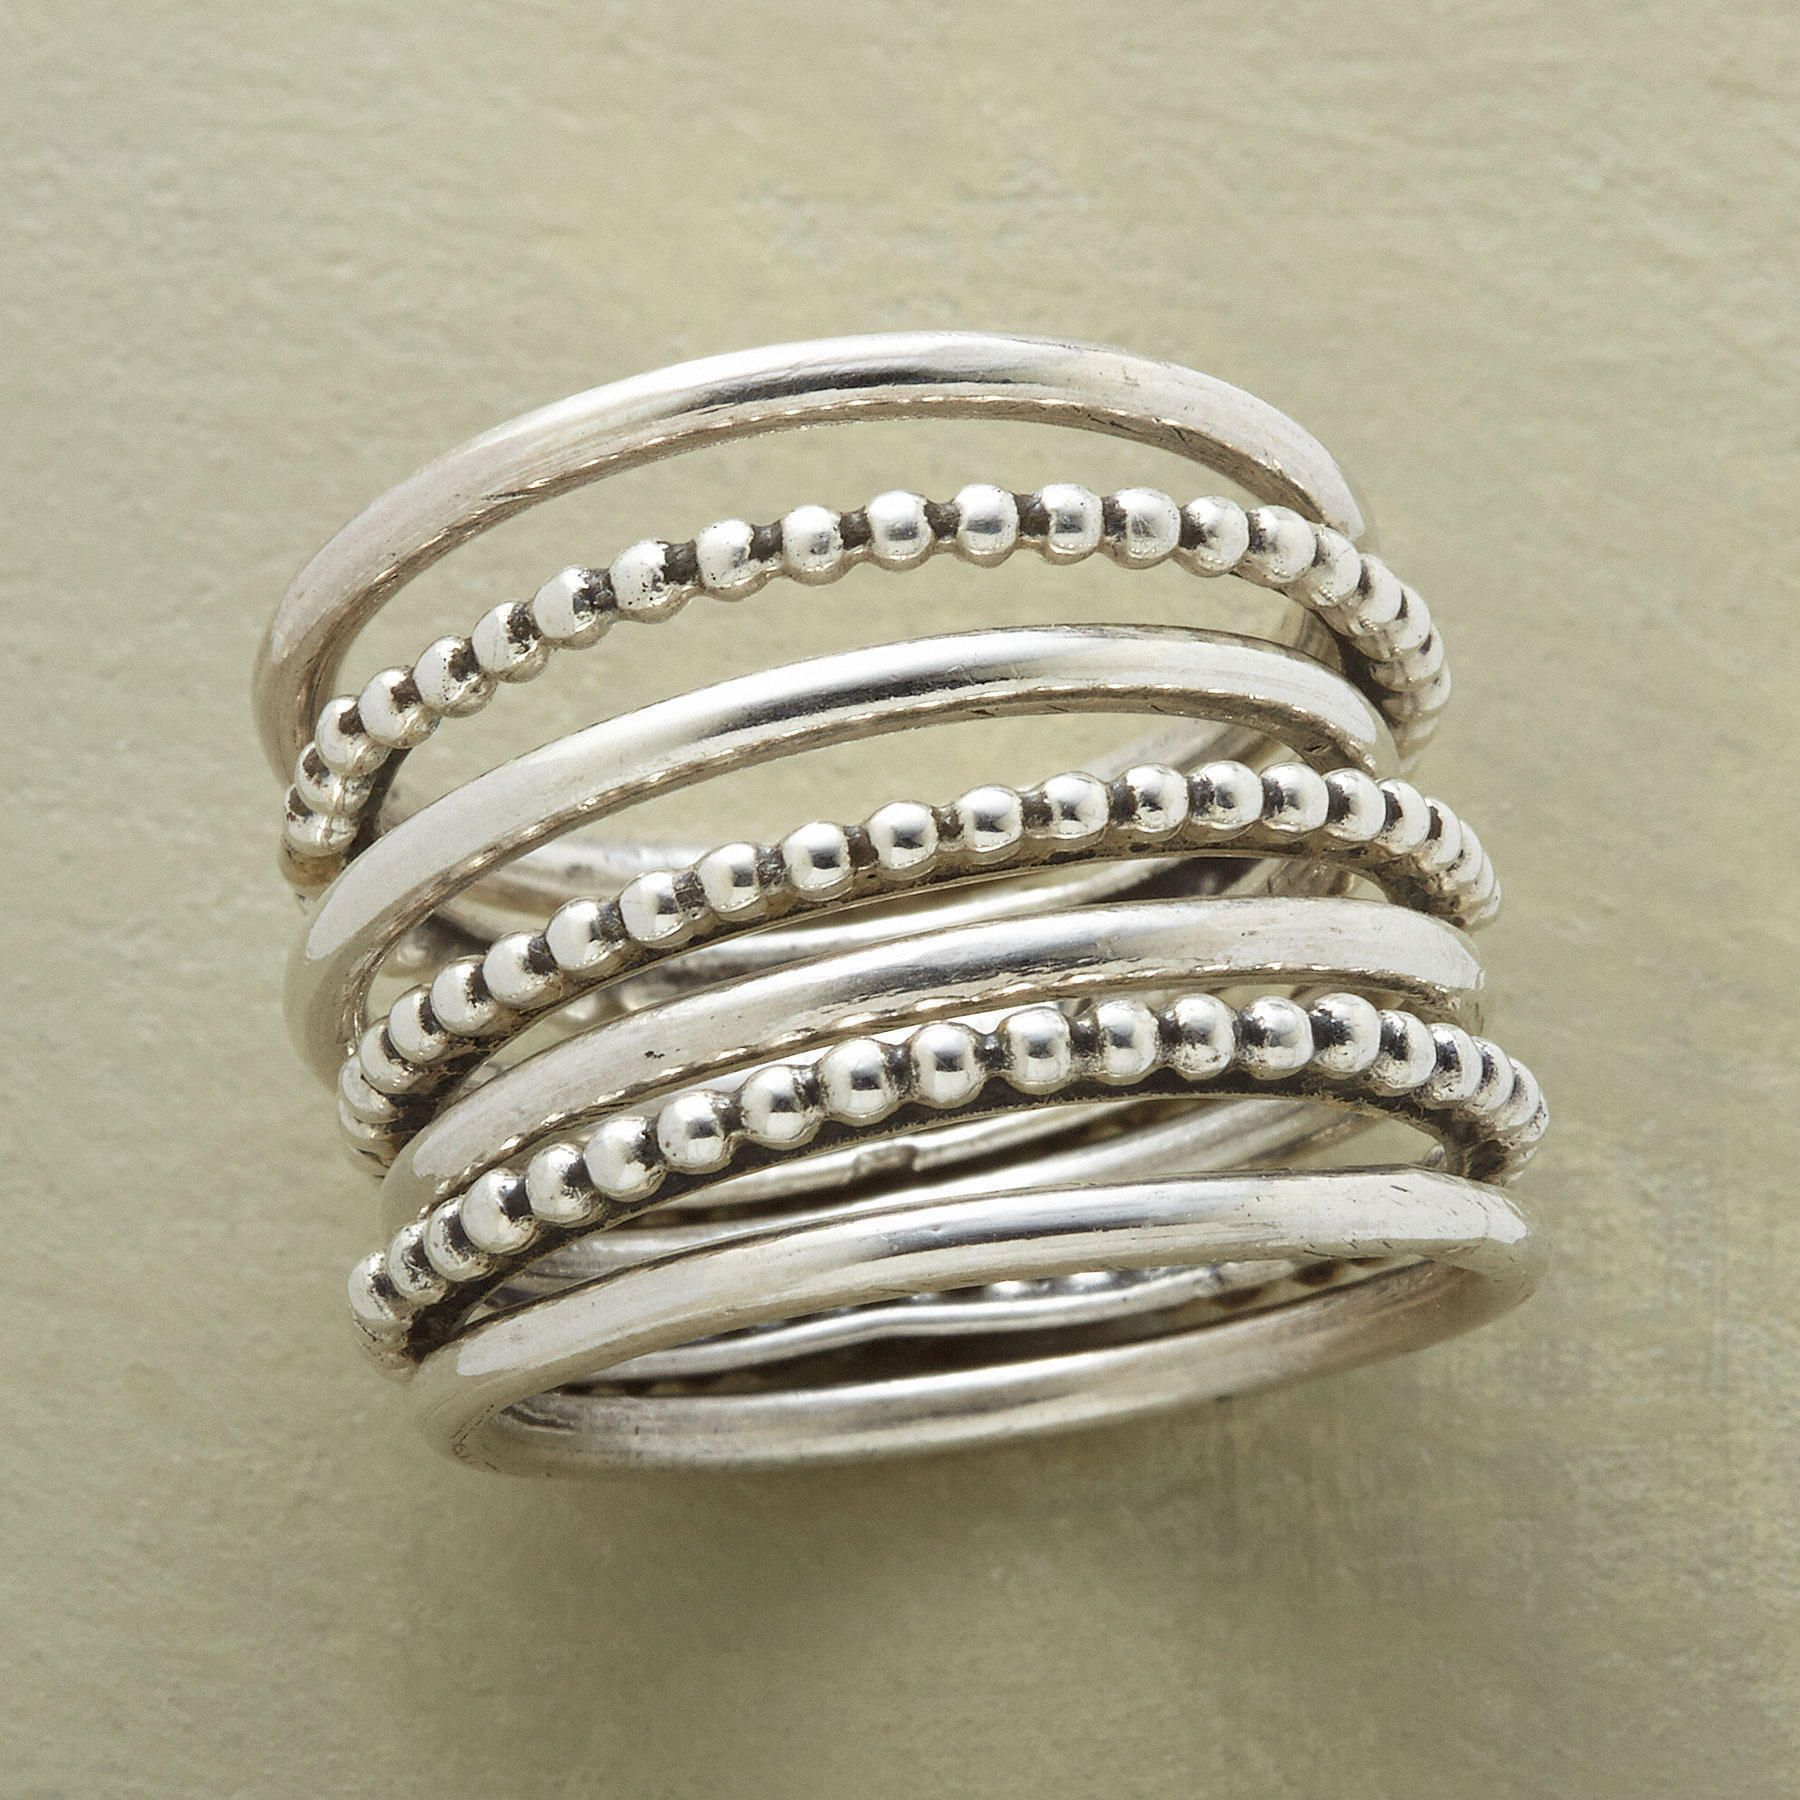 SEVEN BLESSINGS RINGS, SET OF 7--Wear the four smooth and three beaded oxidized sterling silver bands of our seven blessings spiral ring in any combination that pleases. Imported. Exclusive. Whole sizes 5 to 9. Set of 7.